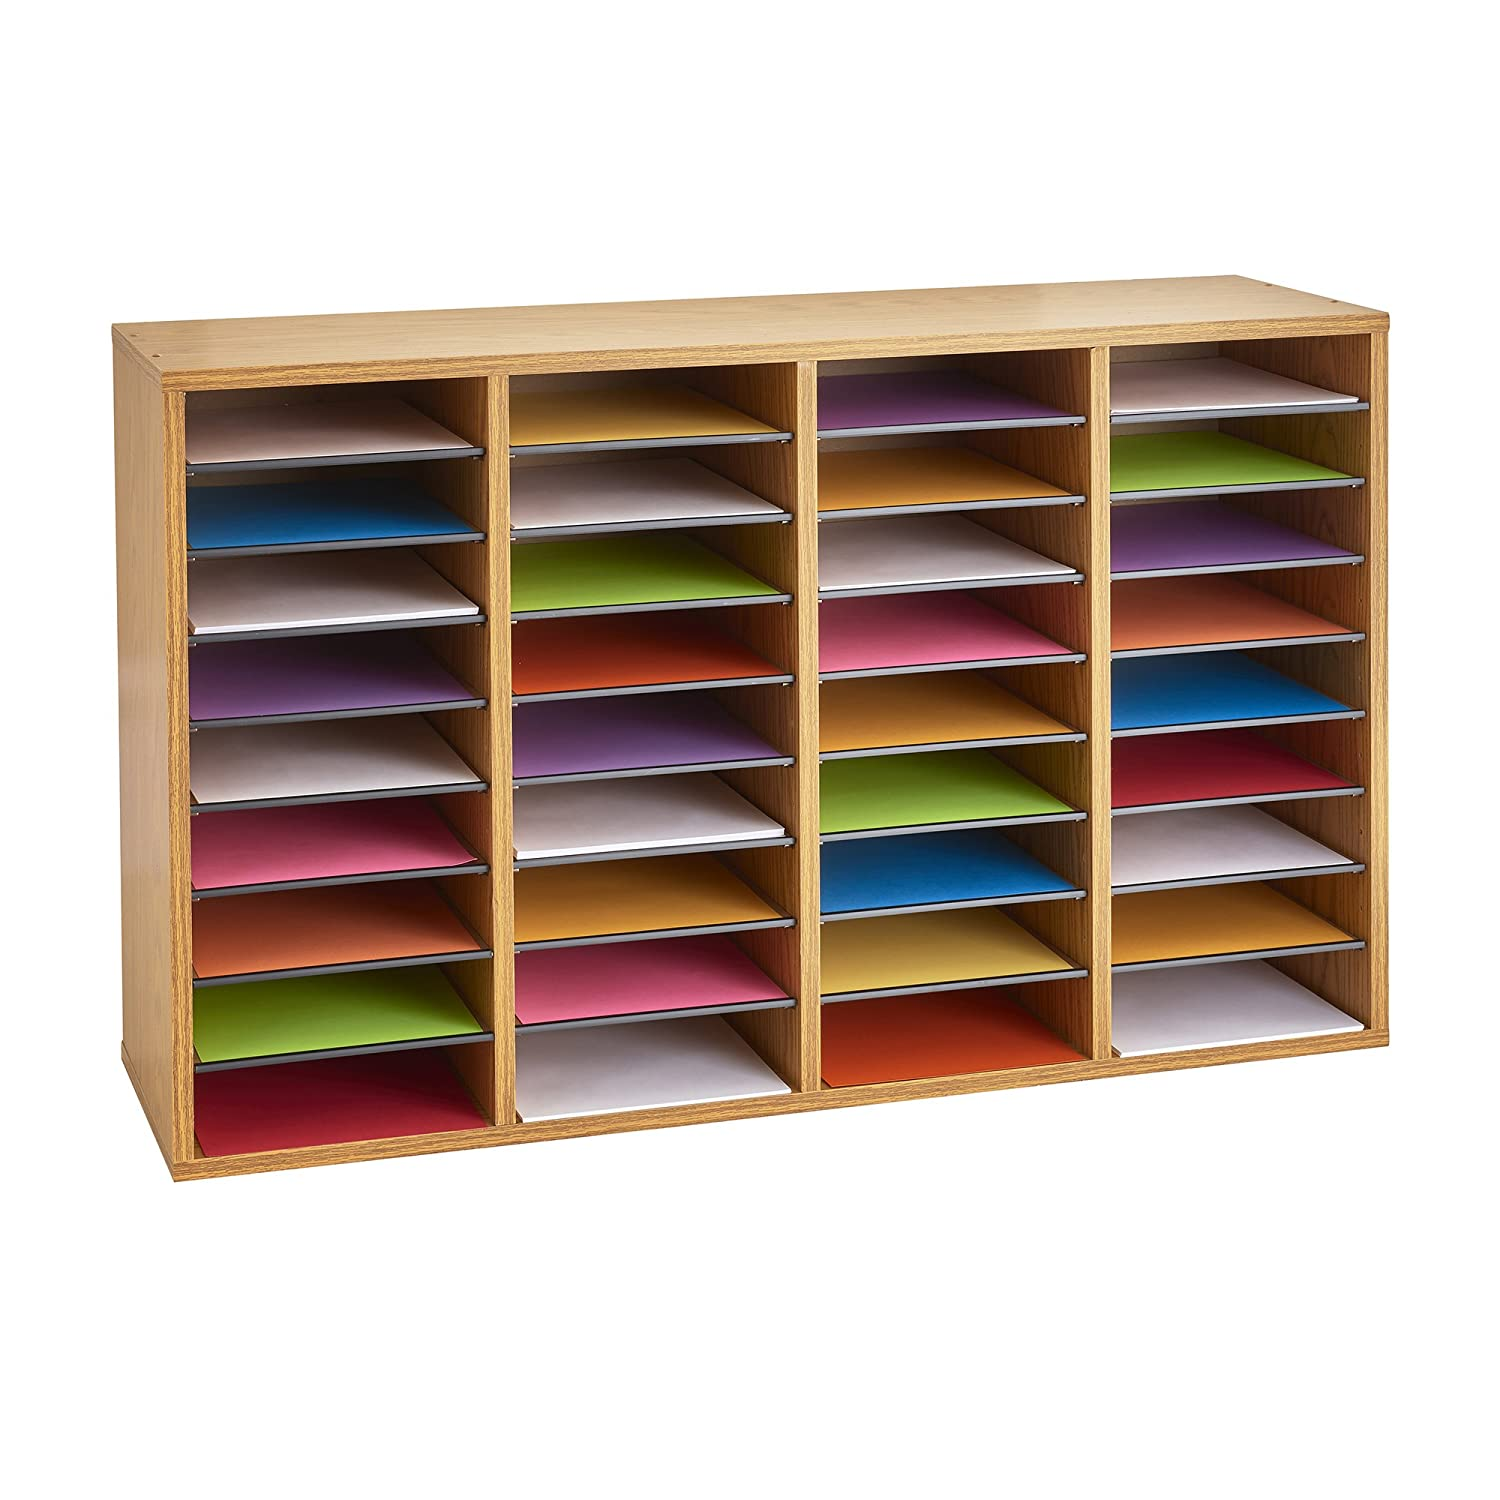 Safco Products Wood Adjustable Literature Organizer 36 Compartment 9424mo Medium Oak Durable Construction Removable Shelves Stackable